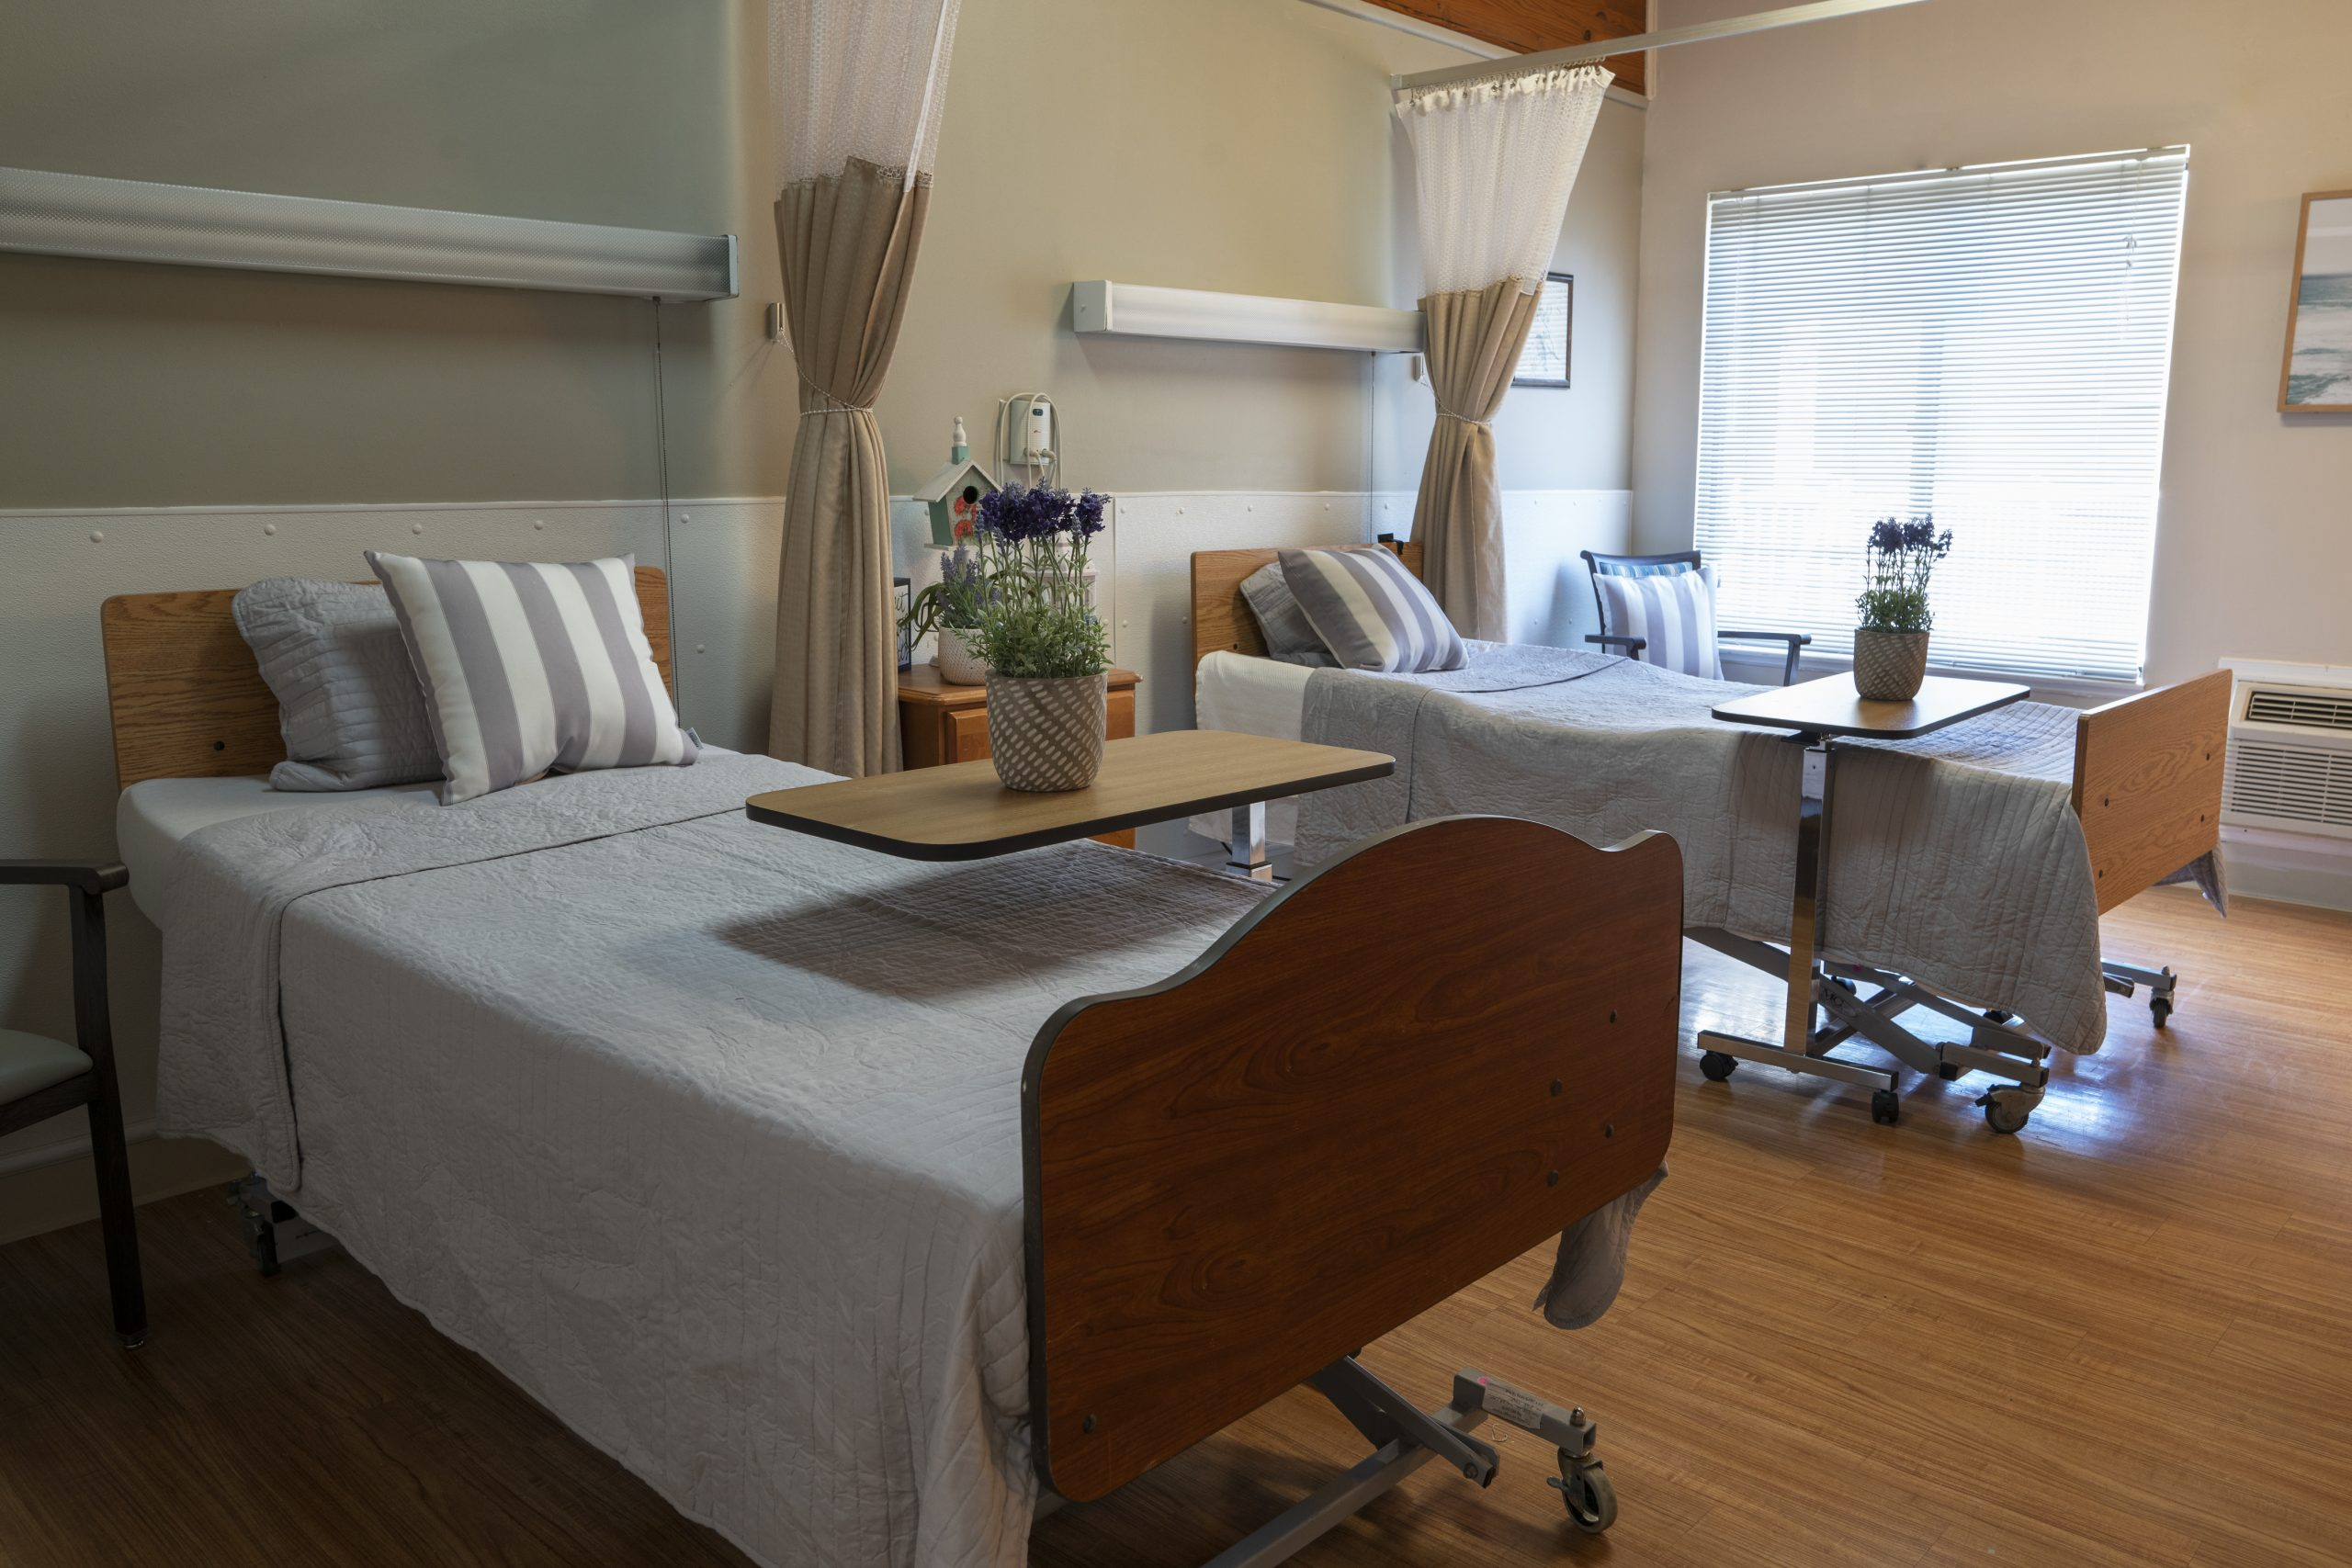 Stonerise Parkersburg patient room with two beds and flowers